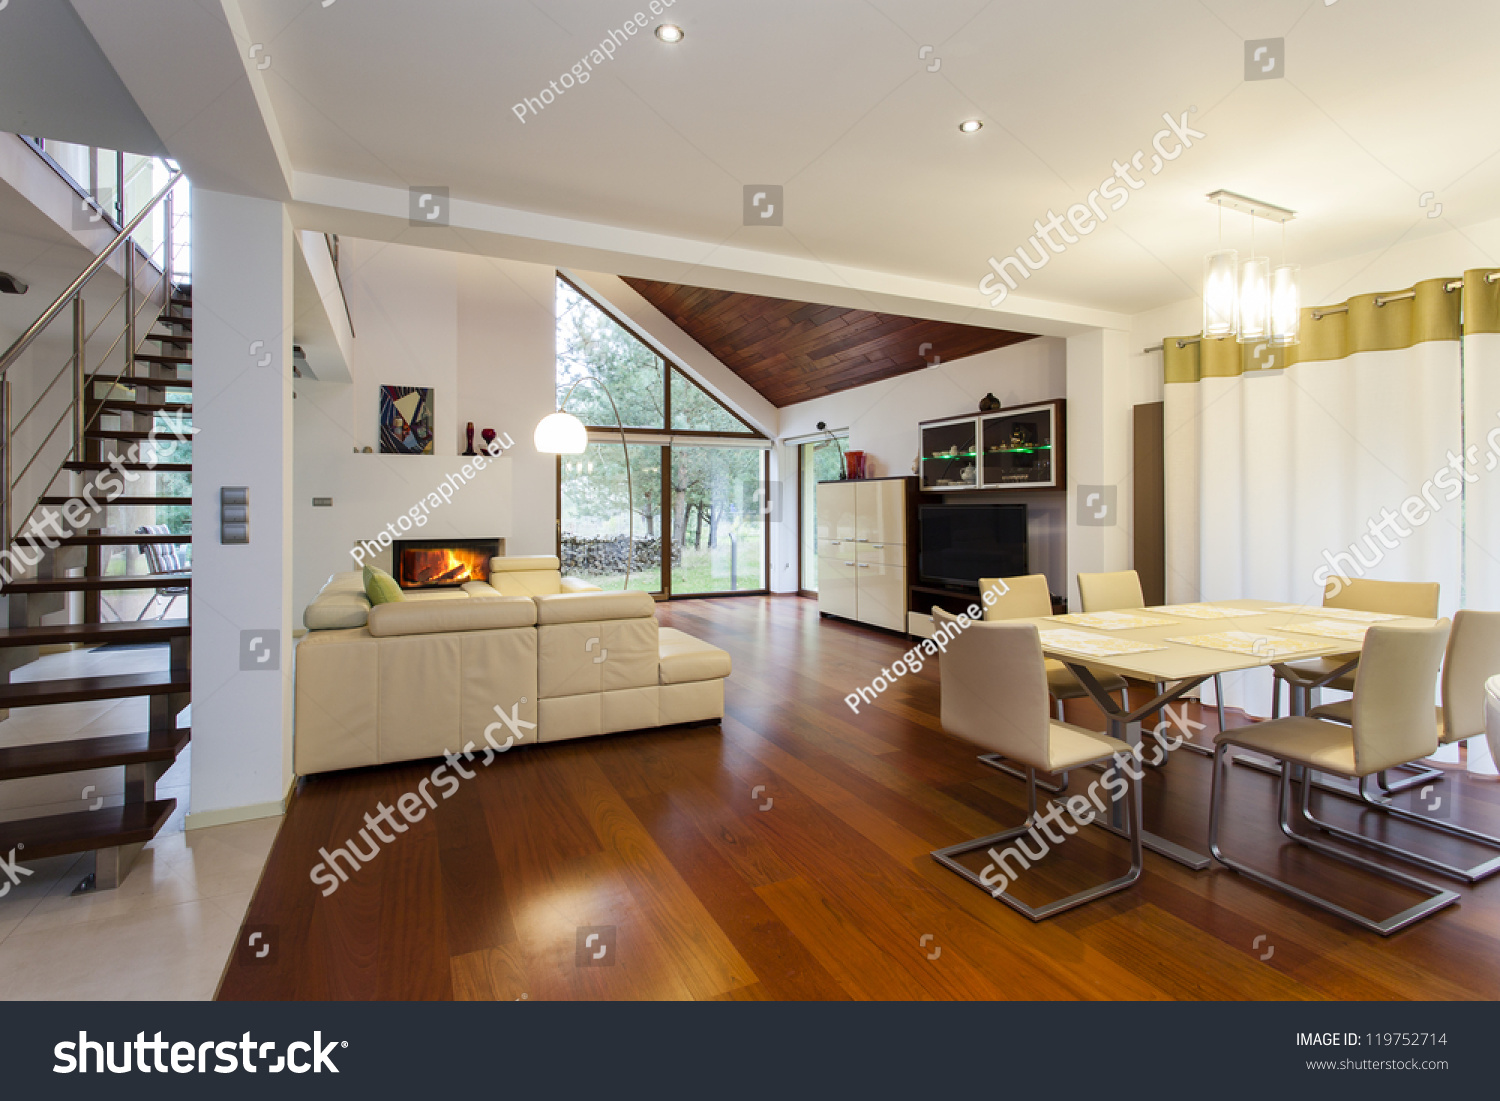 Ground floor of modern house with wooden floor